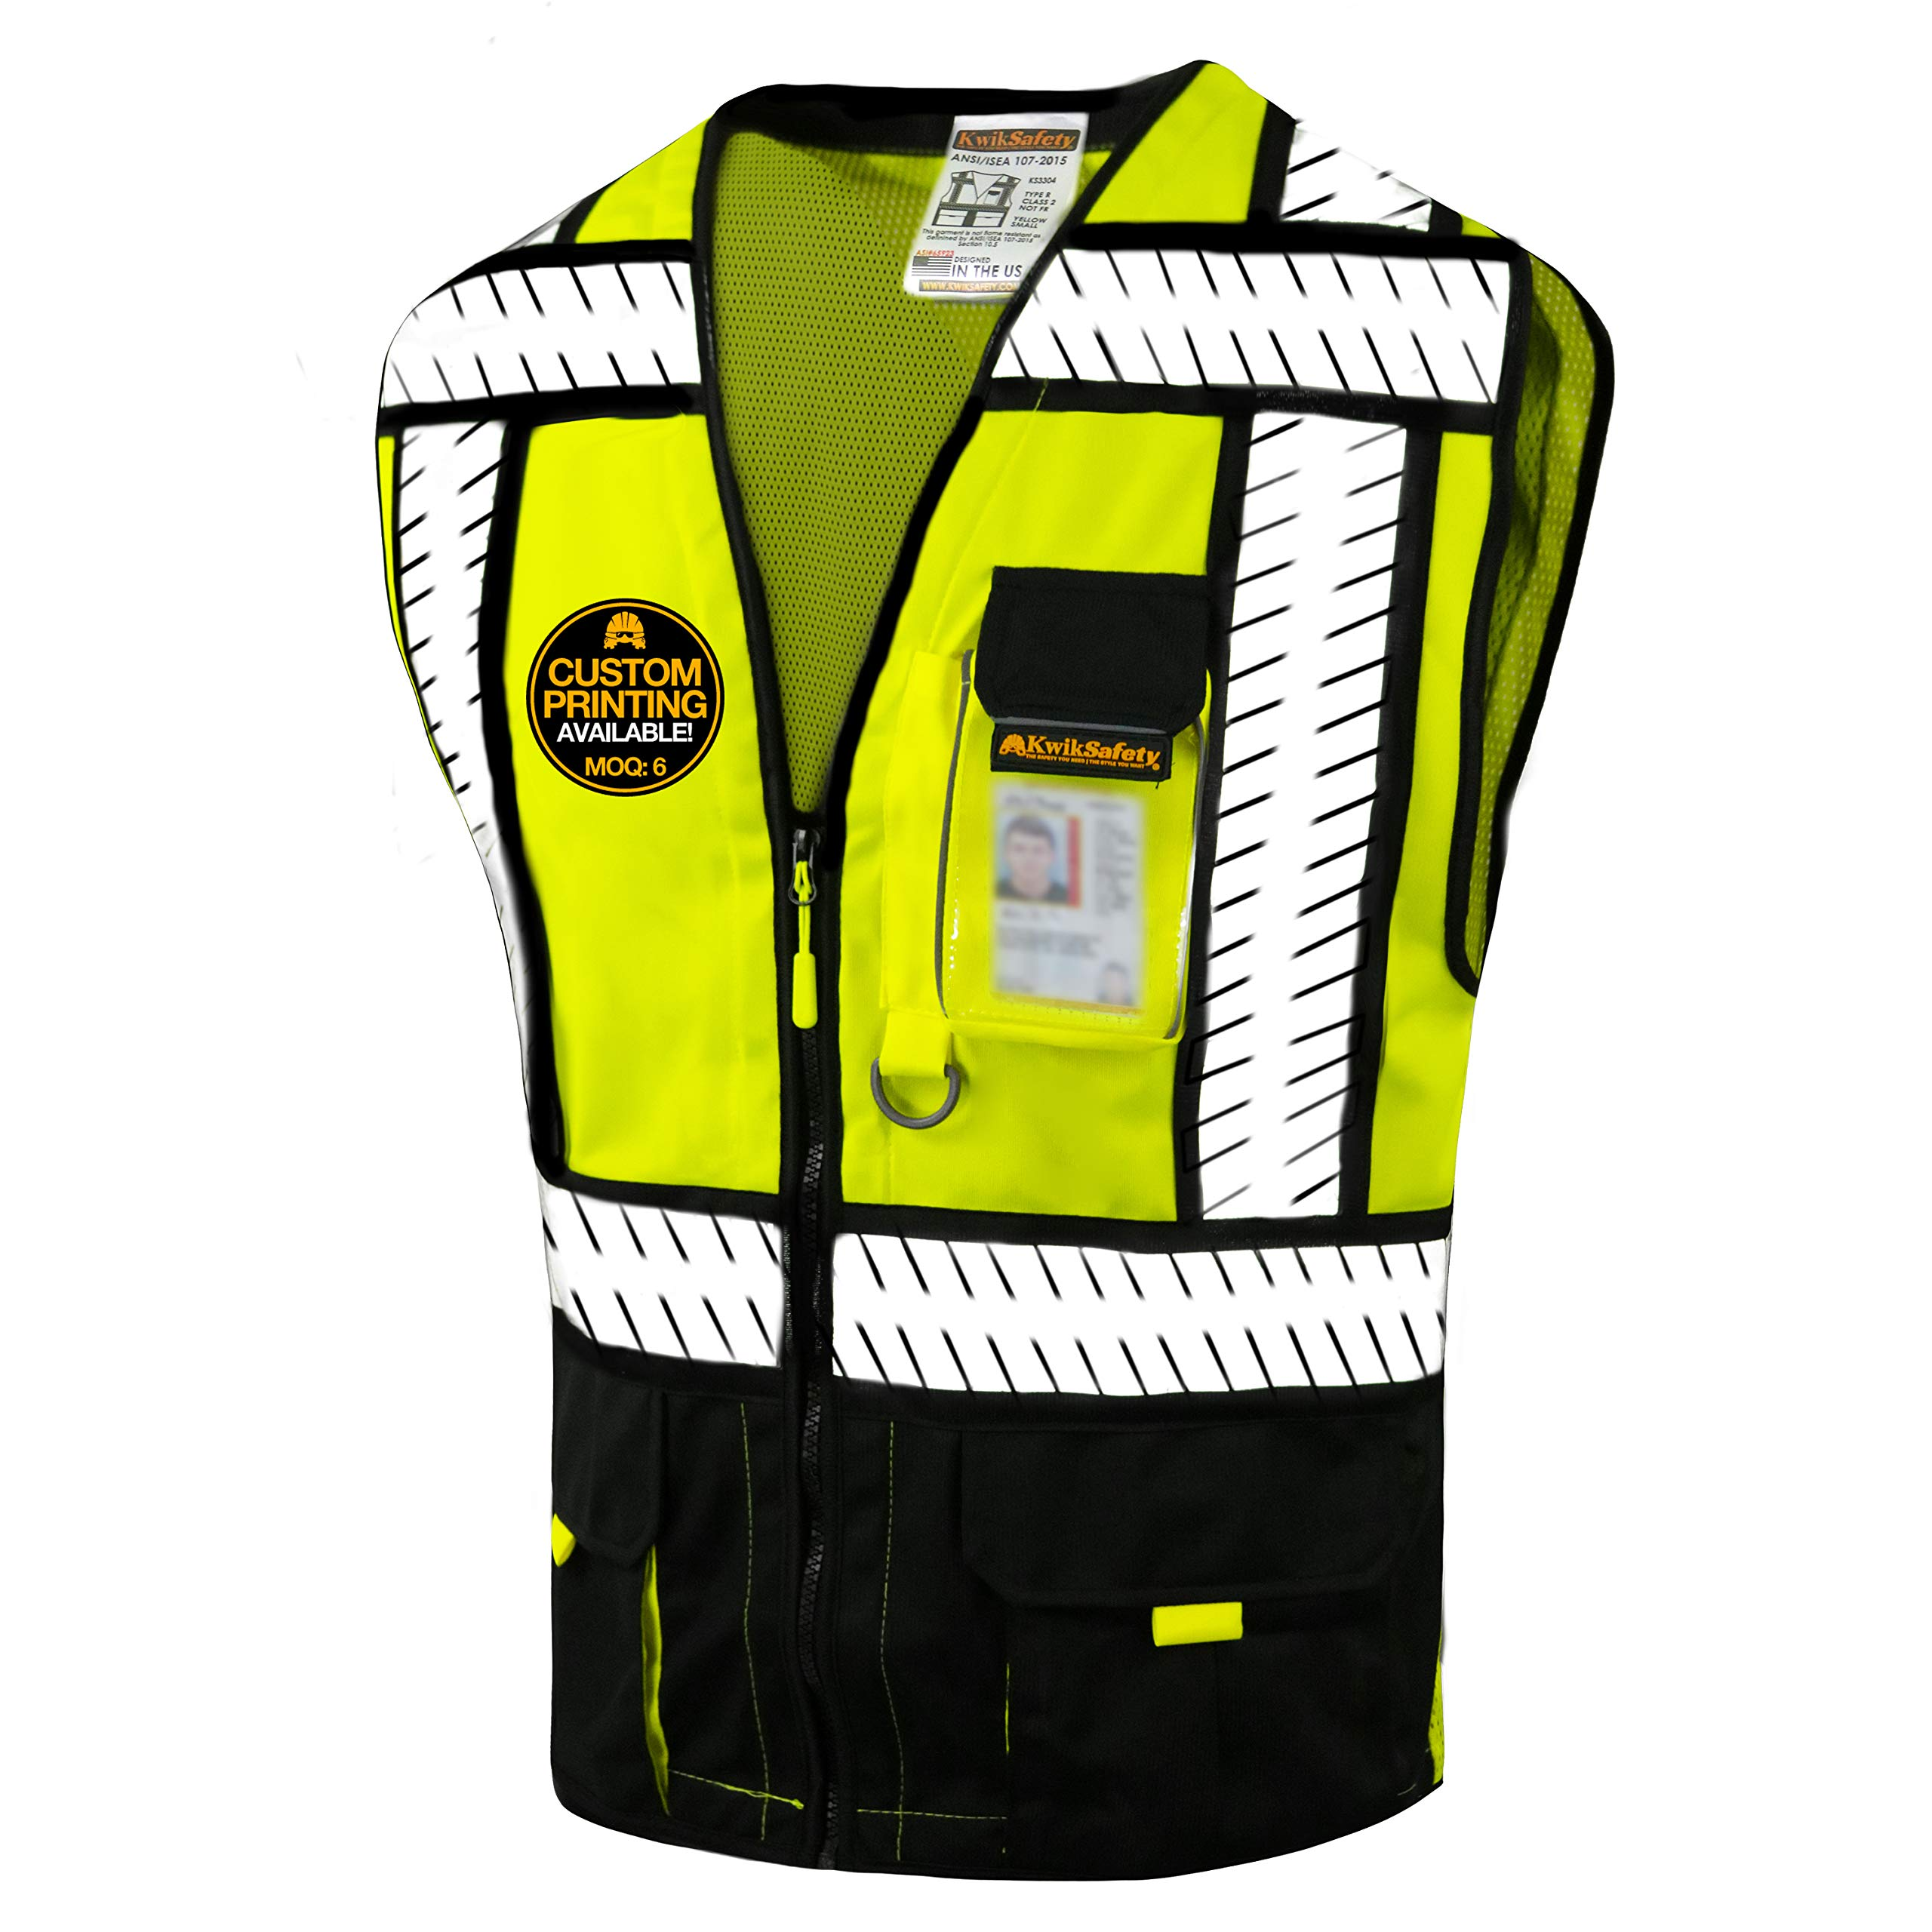 KwikSafety (Charlotte, NC) SPECIALIST (Multi-Use Pockets) Class 2 ANSI High Visibility Reflective Safety Vest Heavy Duty Solid/Mesh and with zipper HiVis Construction Surveyor Work Mens Black LARGE by KwikSafety